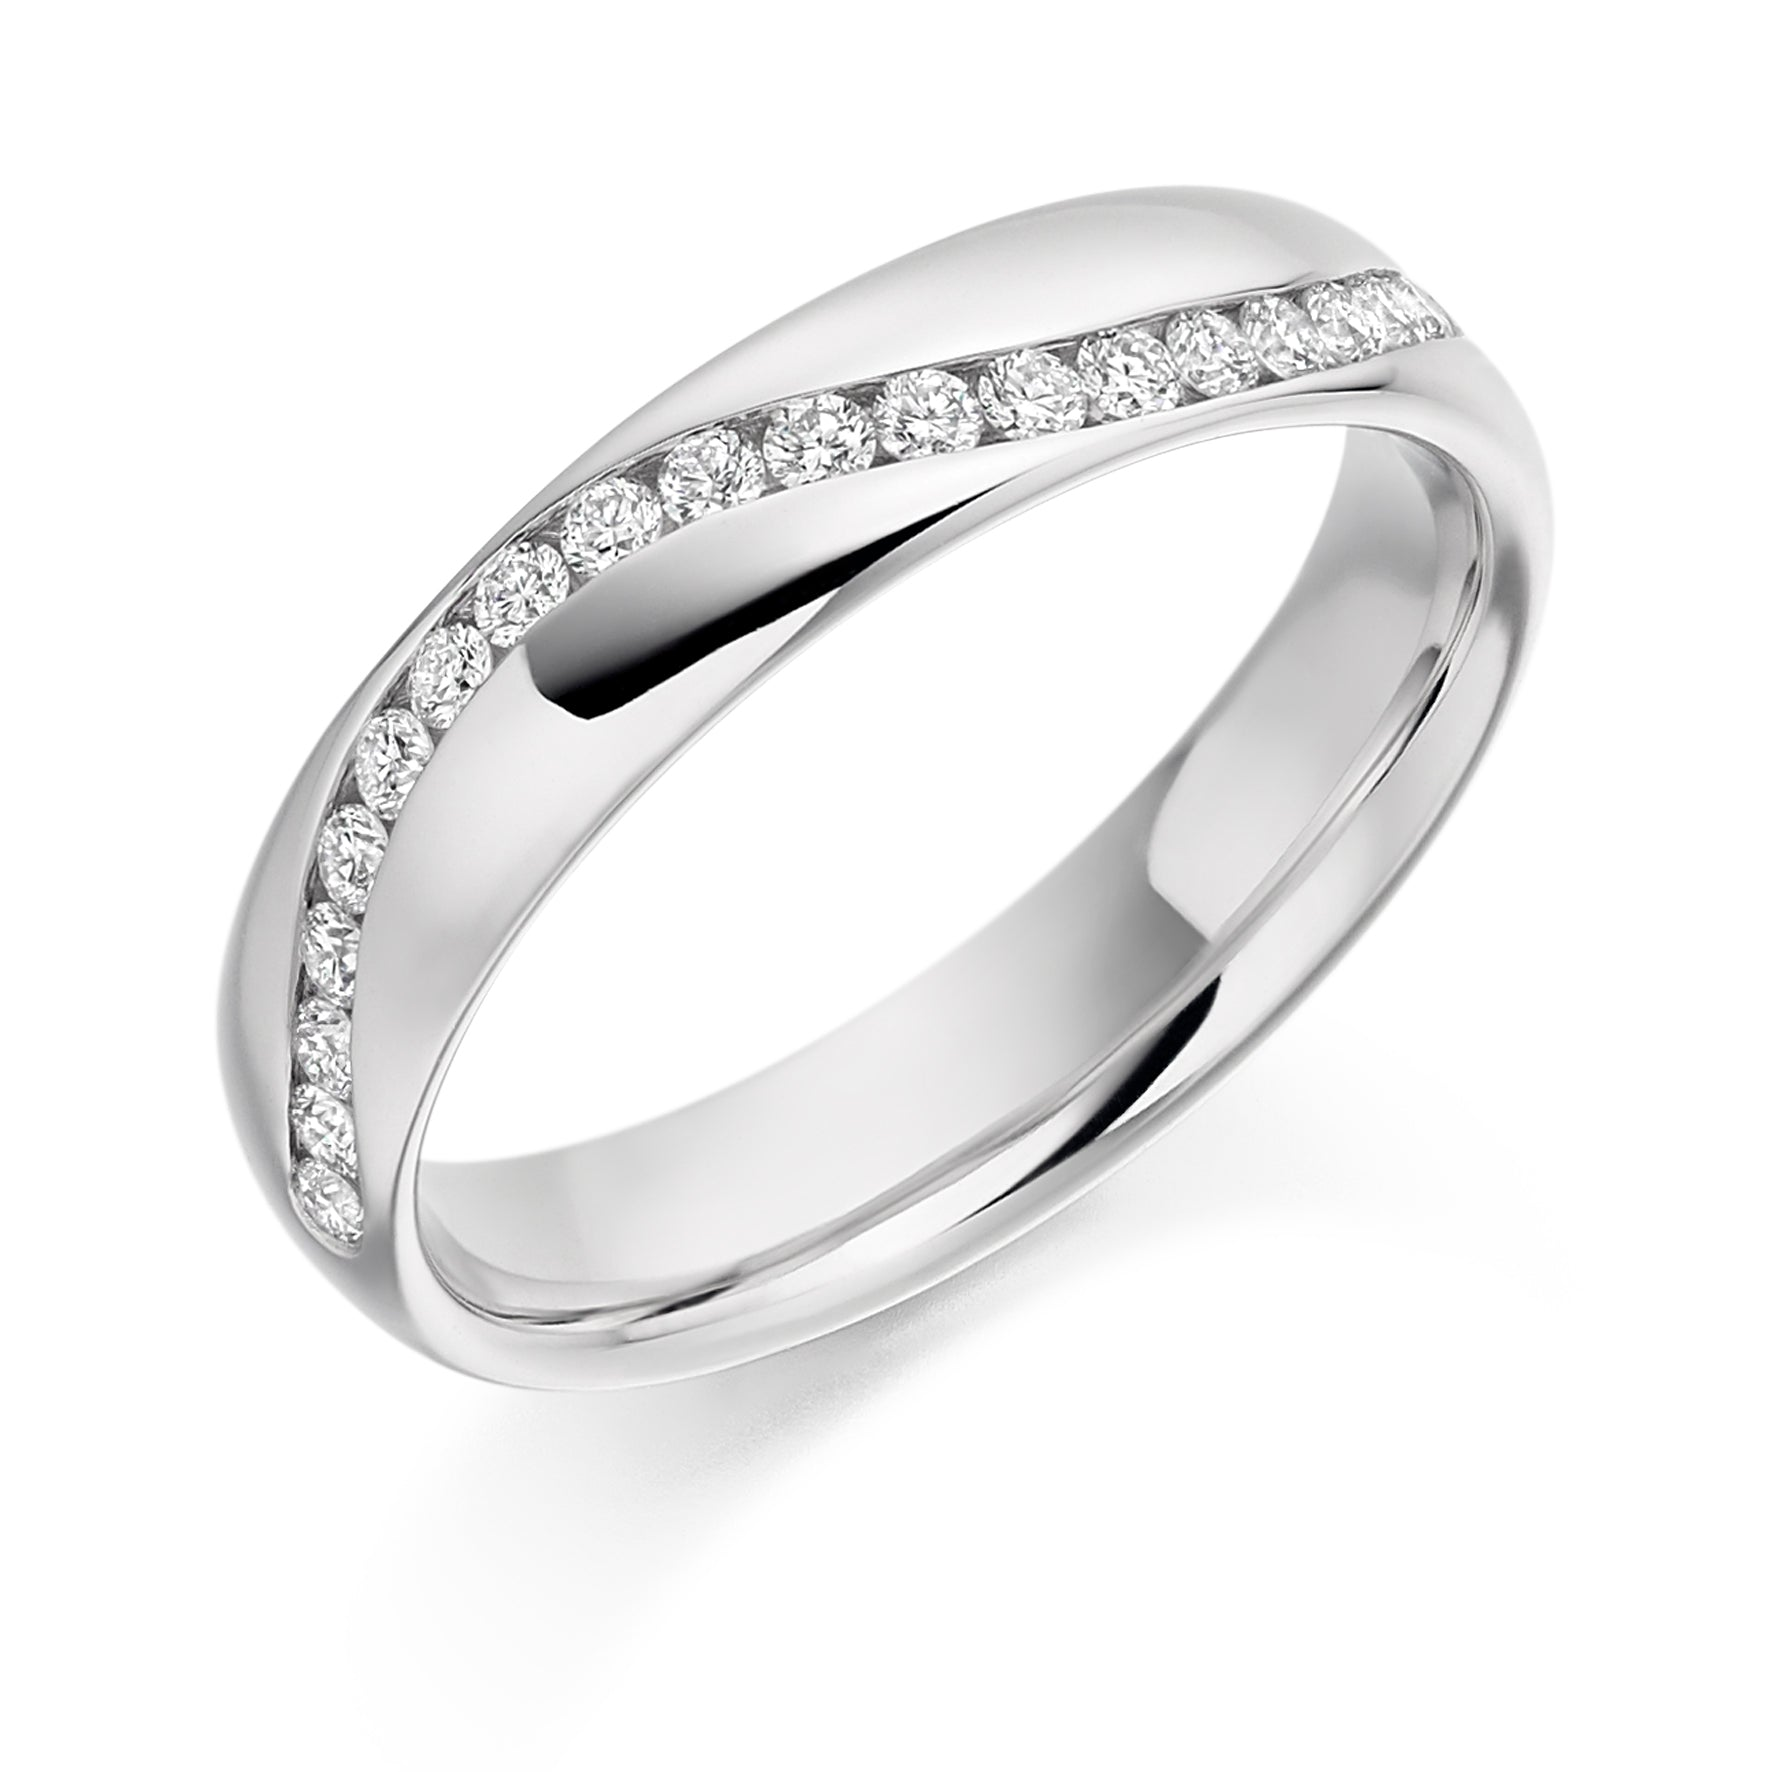 18ct White Gold 0.3ct Round Brilliant Cut Diamonds Curved Channel Vintage Wedding Ring